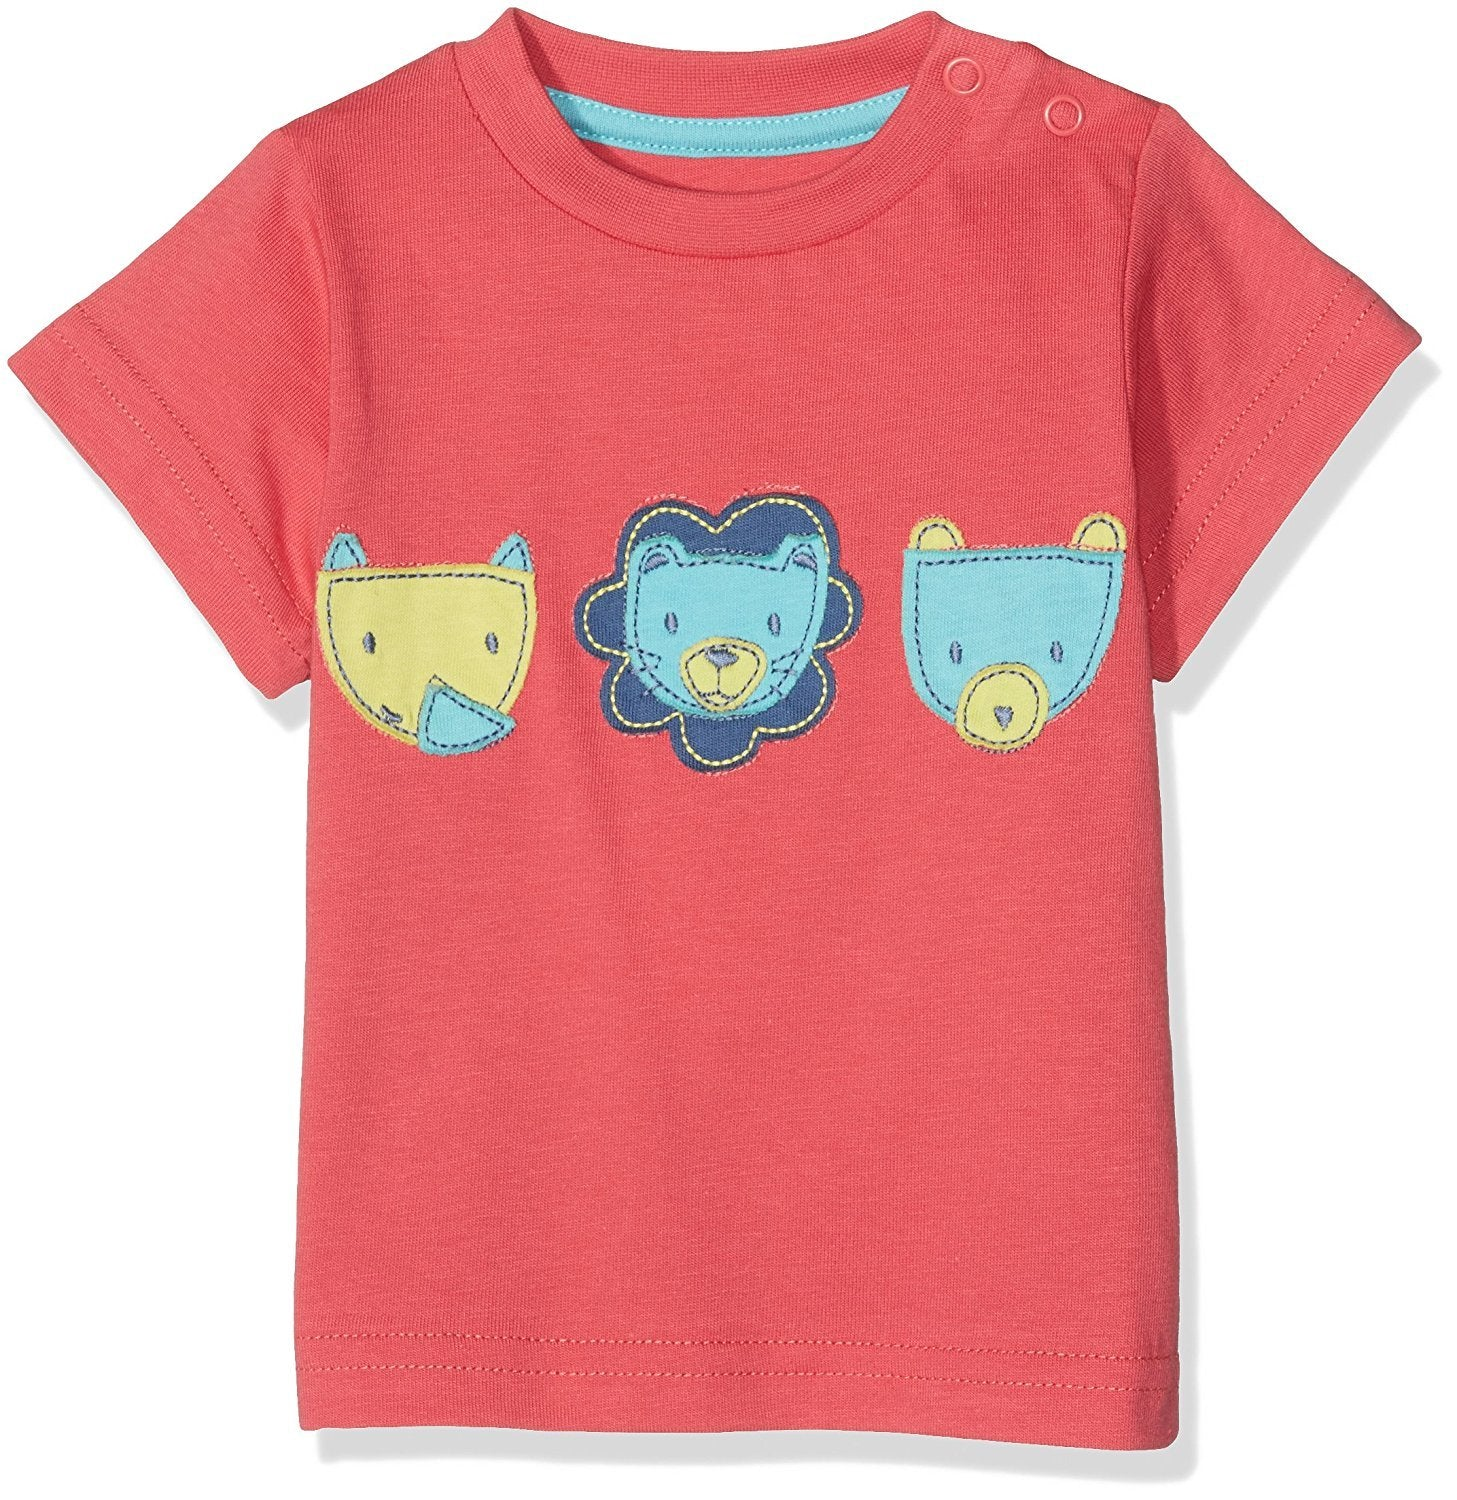 Kite Lion and Pals T-Shirt - Stockpoint Apparel Outlet